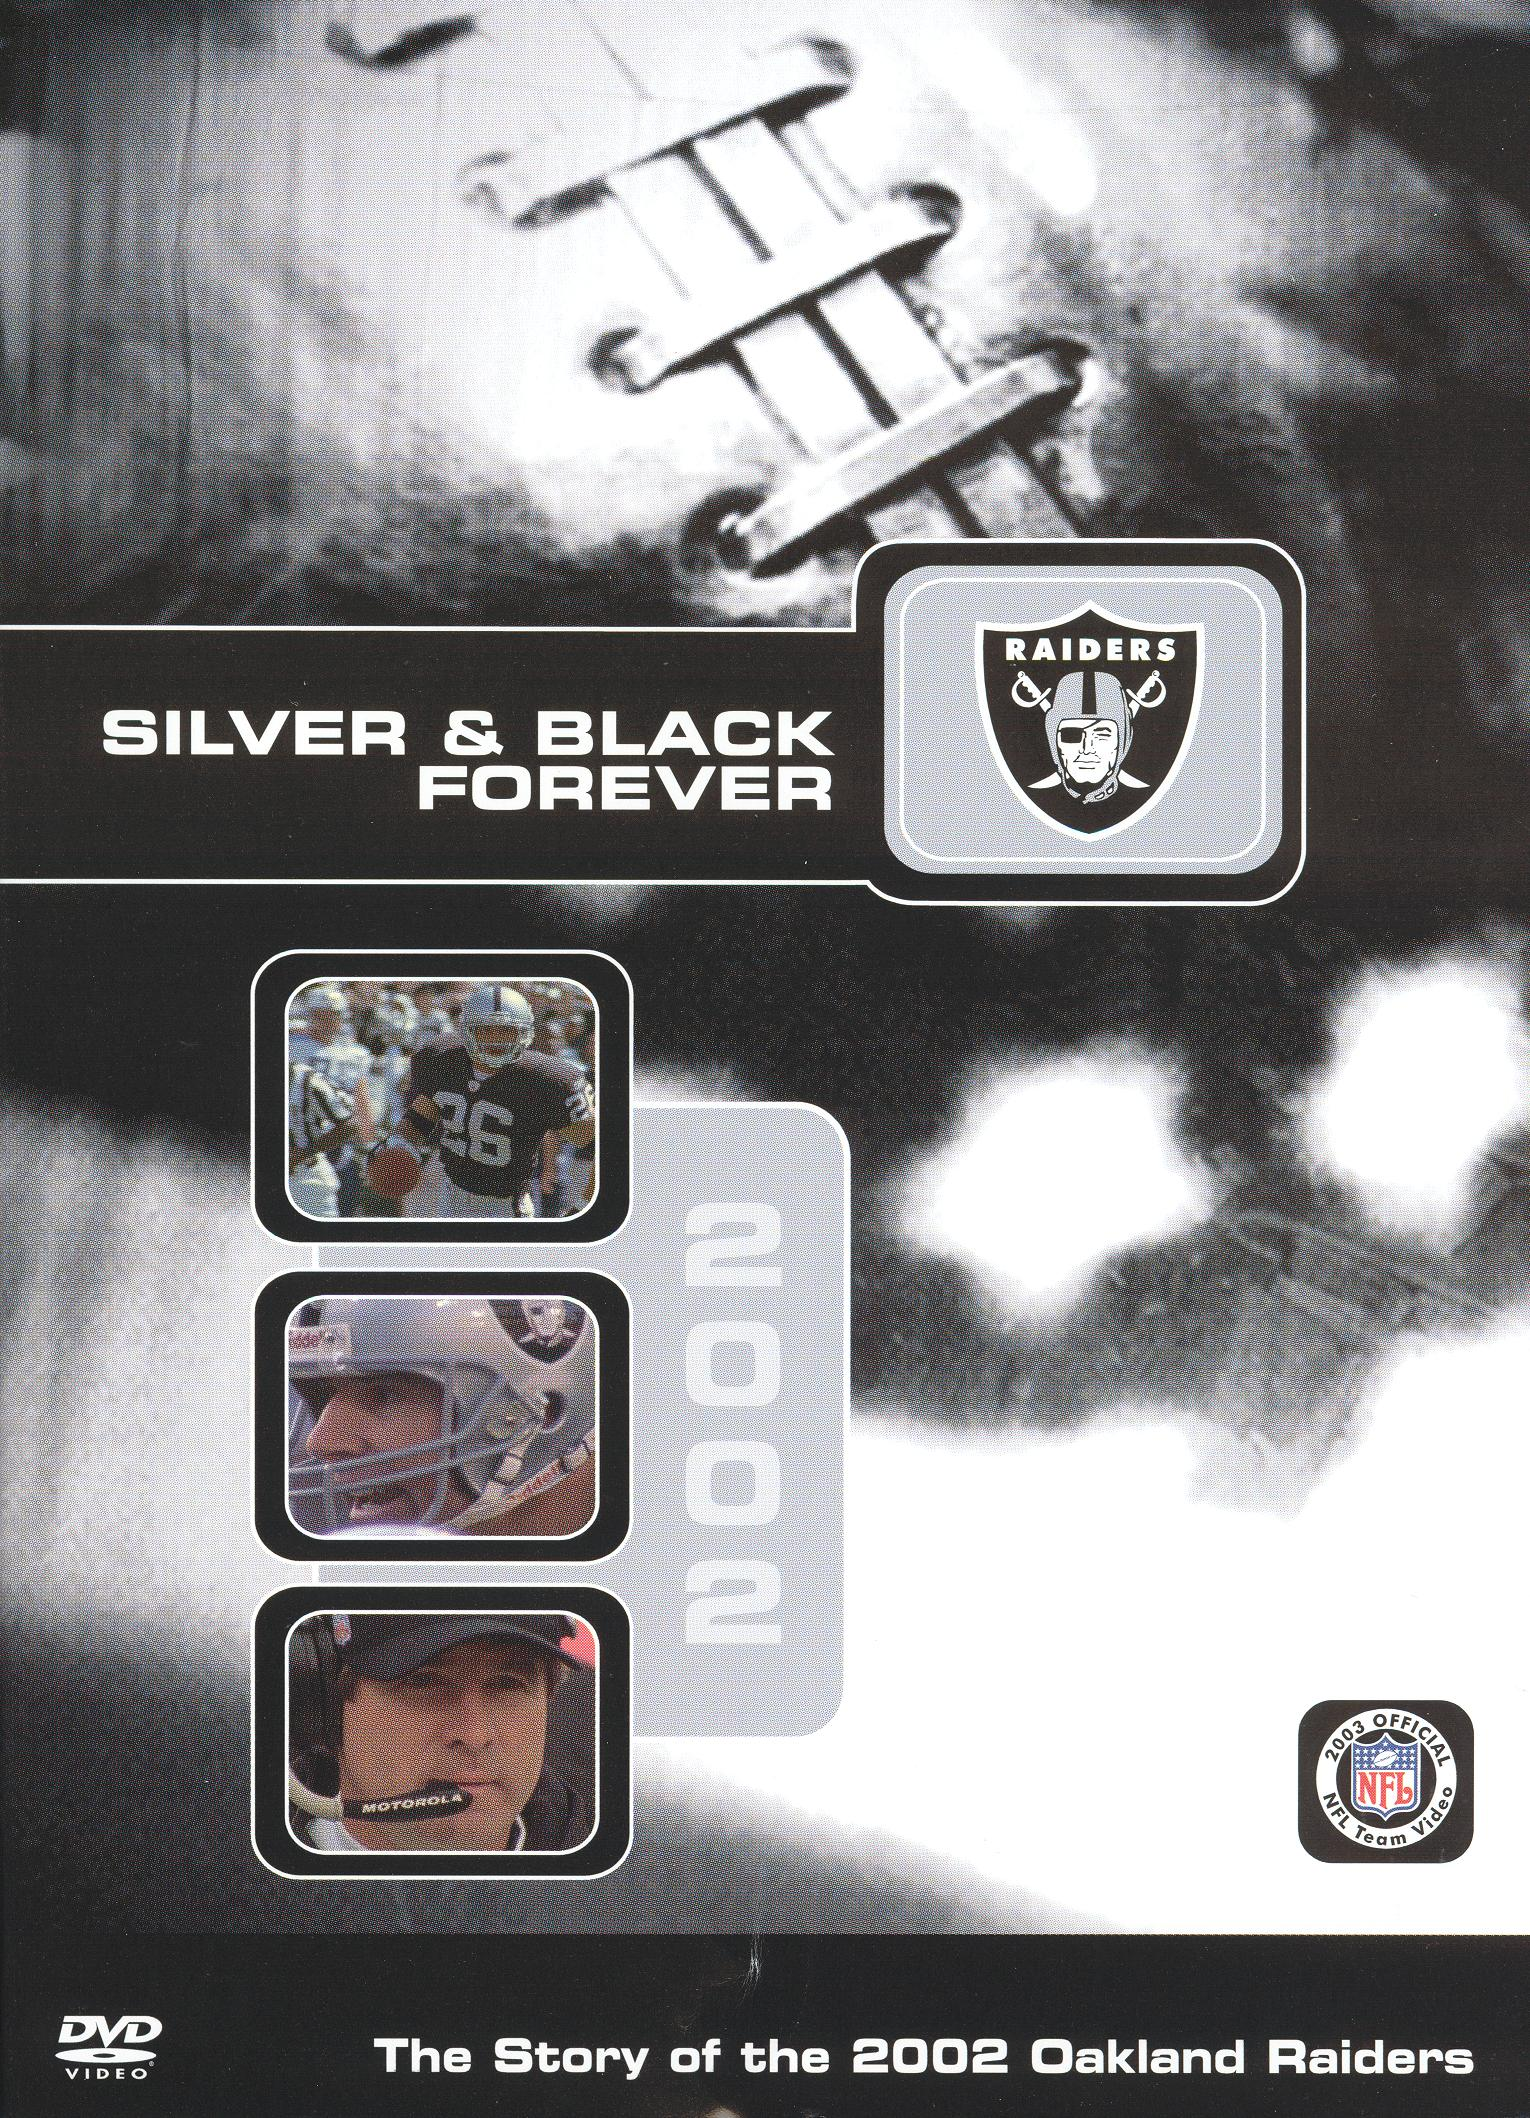 NFL: 2002 Oakland Raiders Team Video - Silver & Black Forever